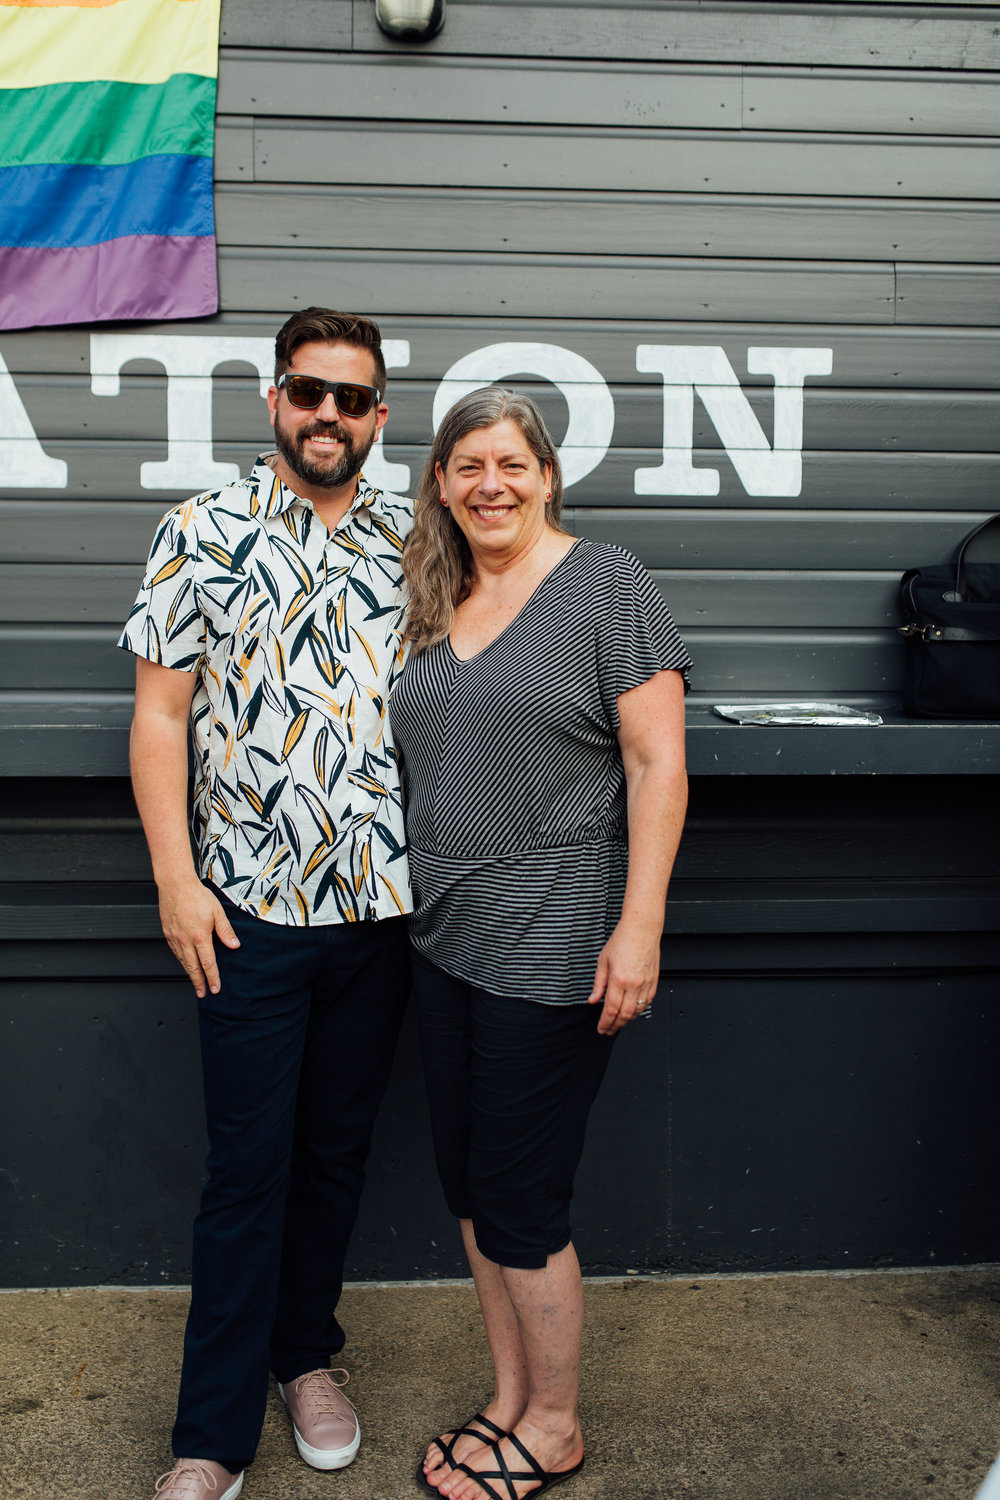 SeattleEventAug2018(15of238).jpg